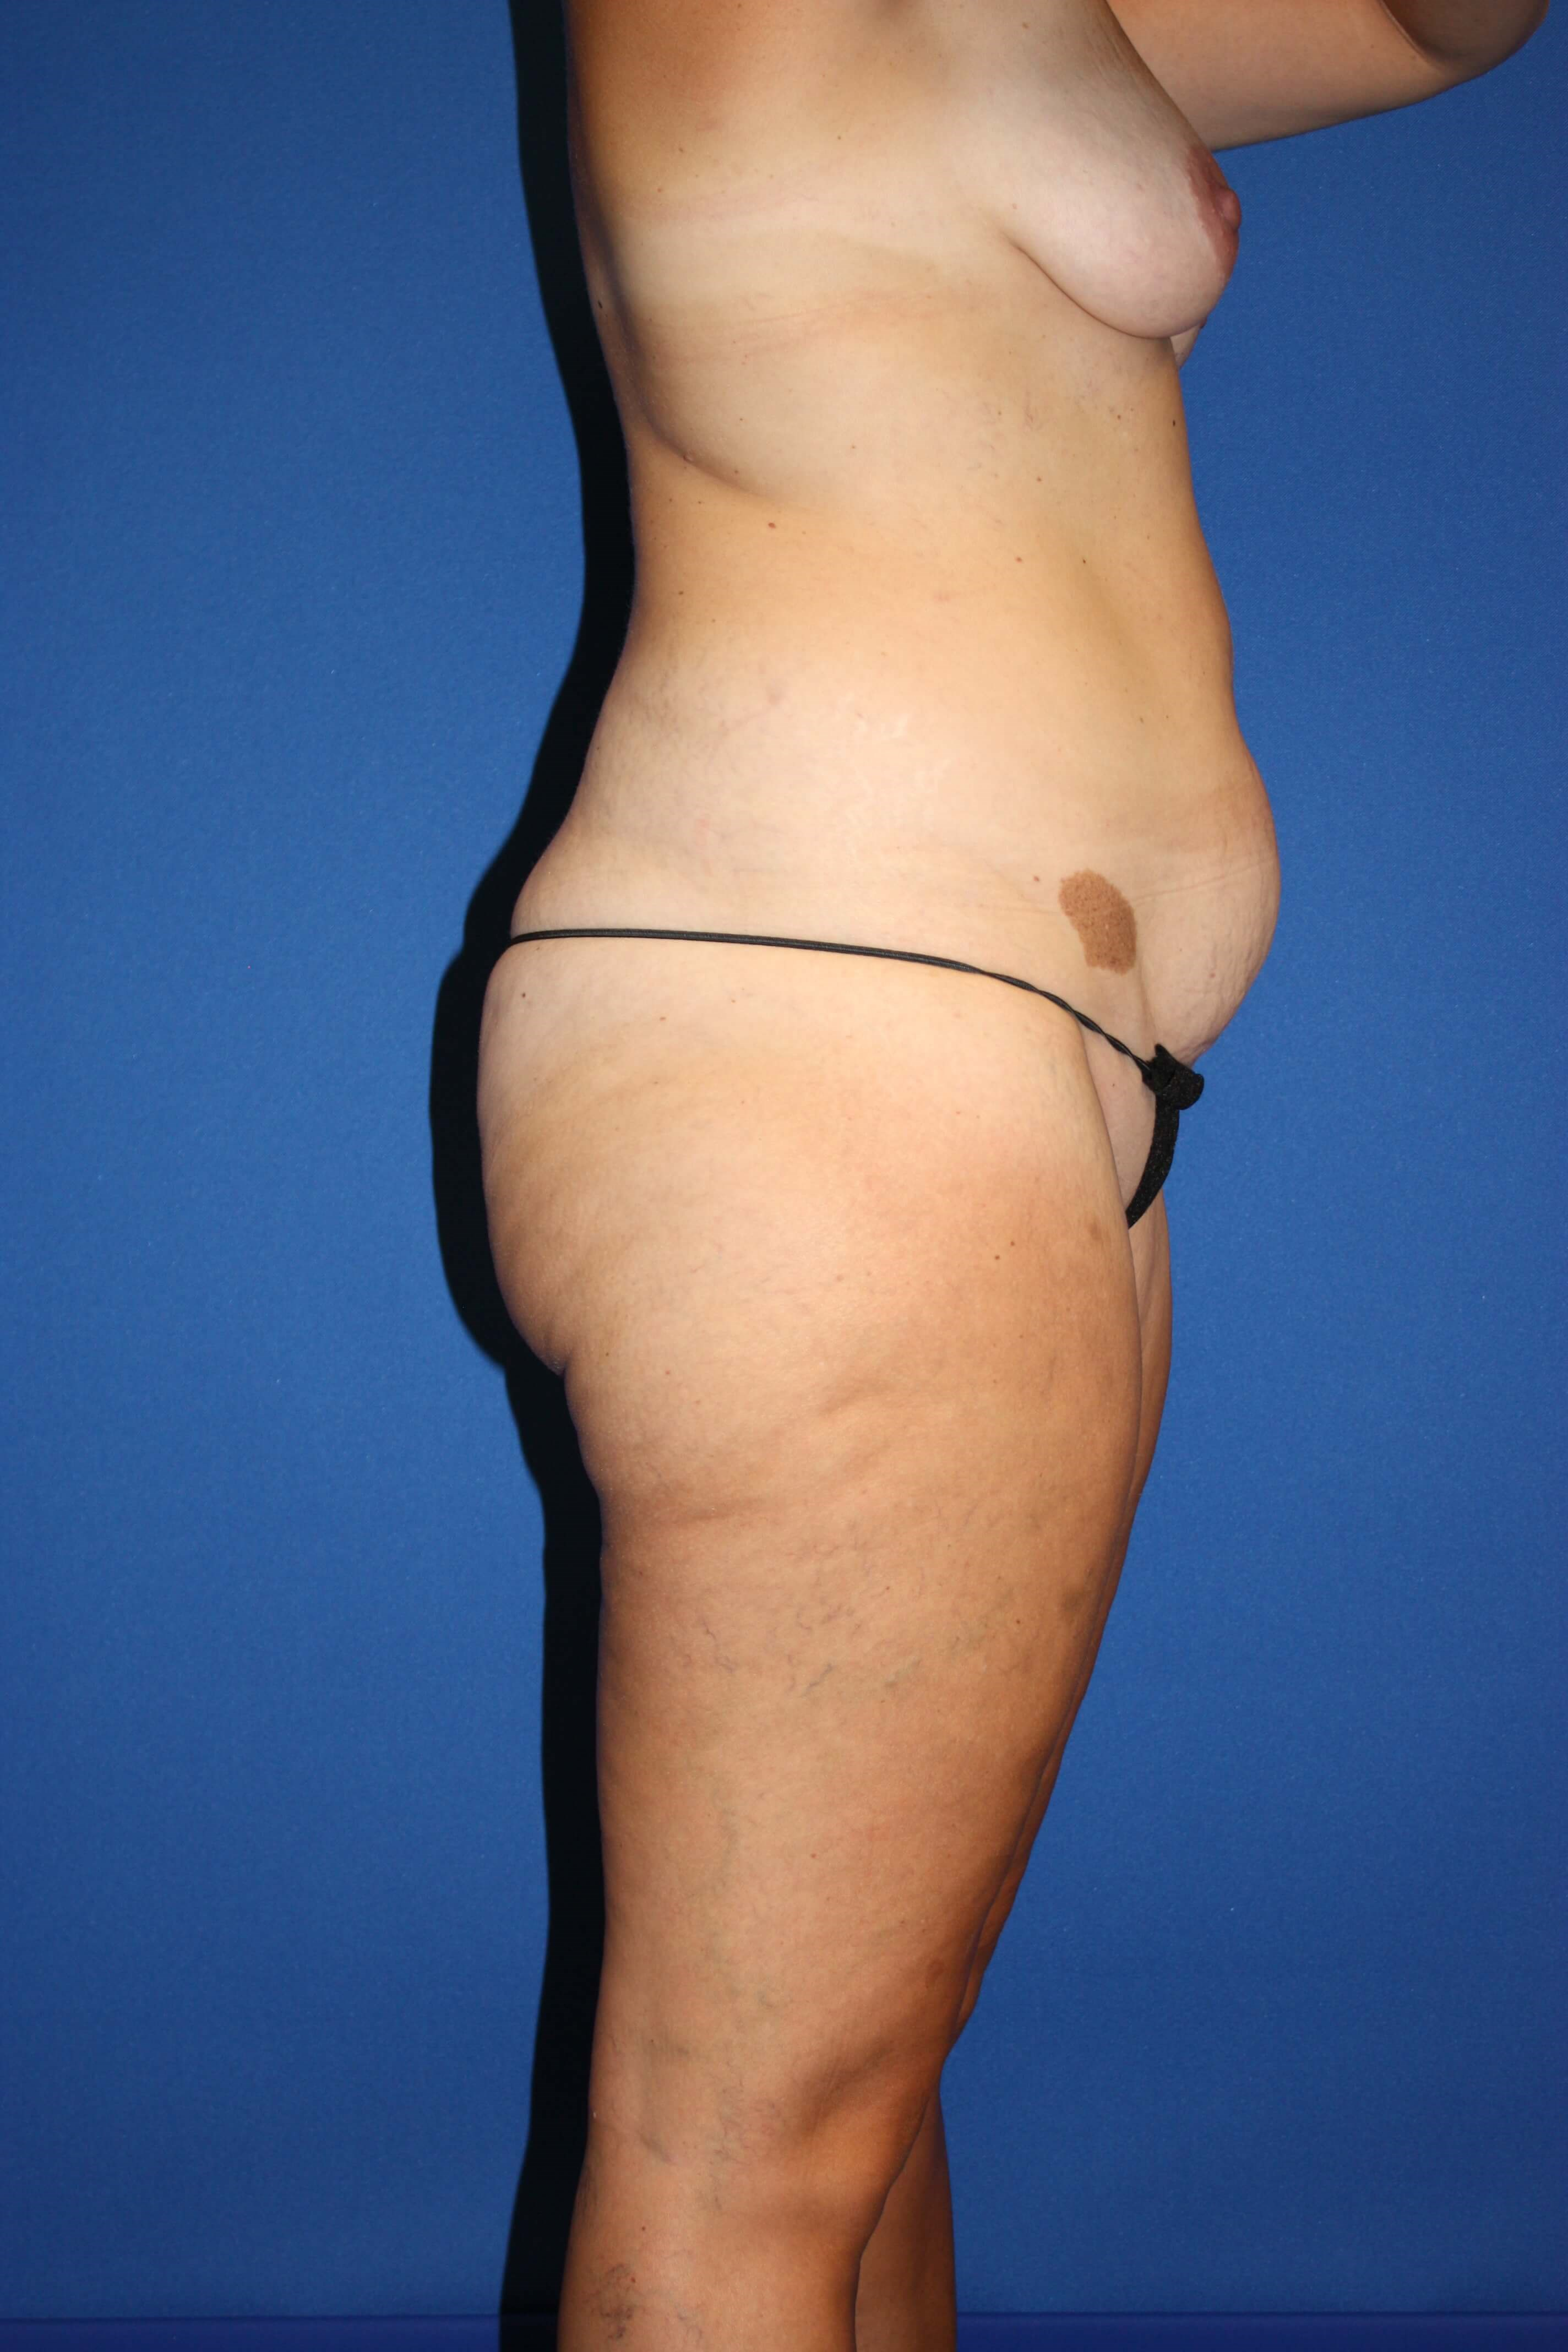 Tummy Tuck, Liposuction-Side Before